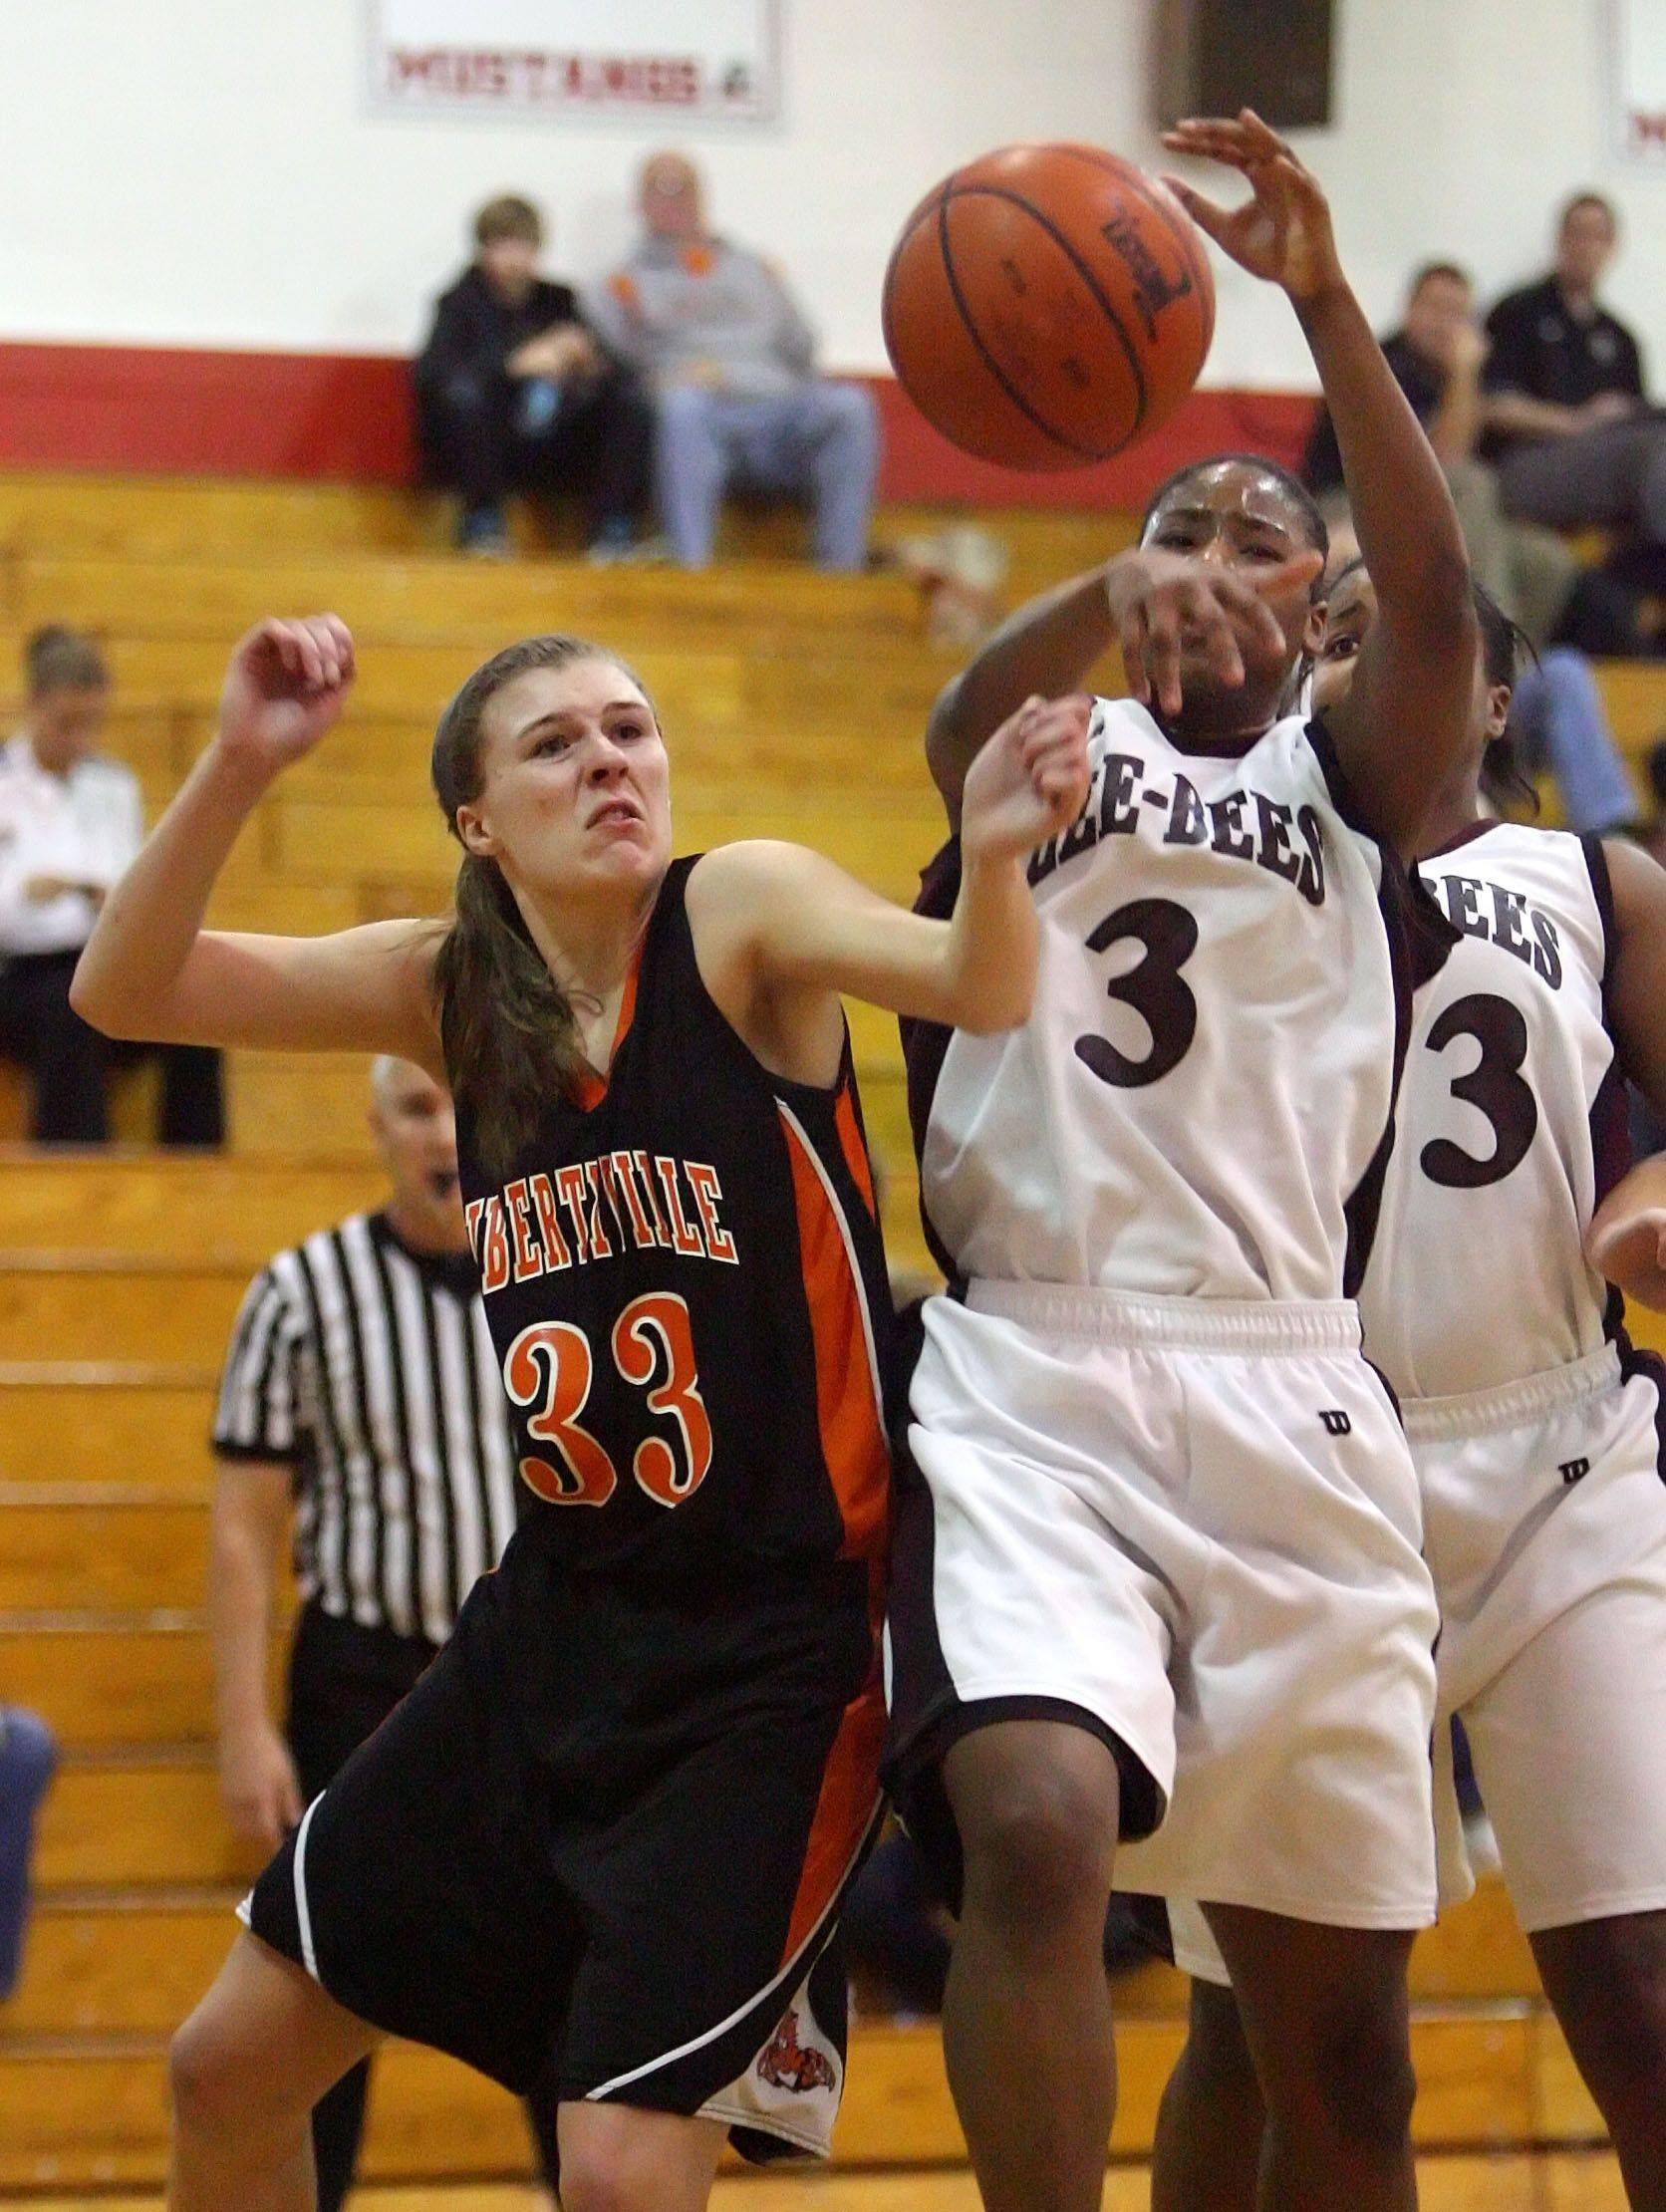 Libertyville's Haley Hoeksel, left, and Zion-Benton's Octavia Crump battle for a rebound on Wednesday night at Mundelein.